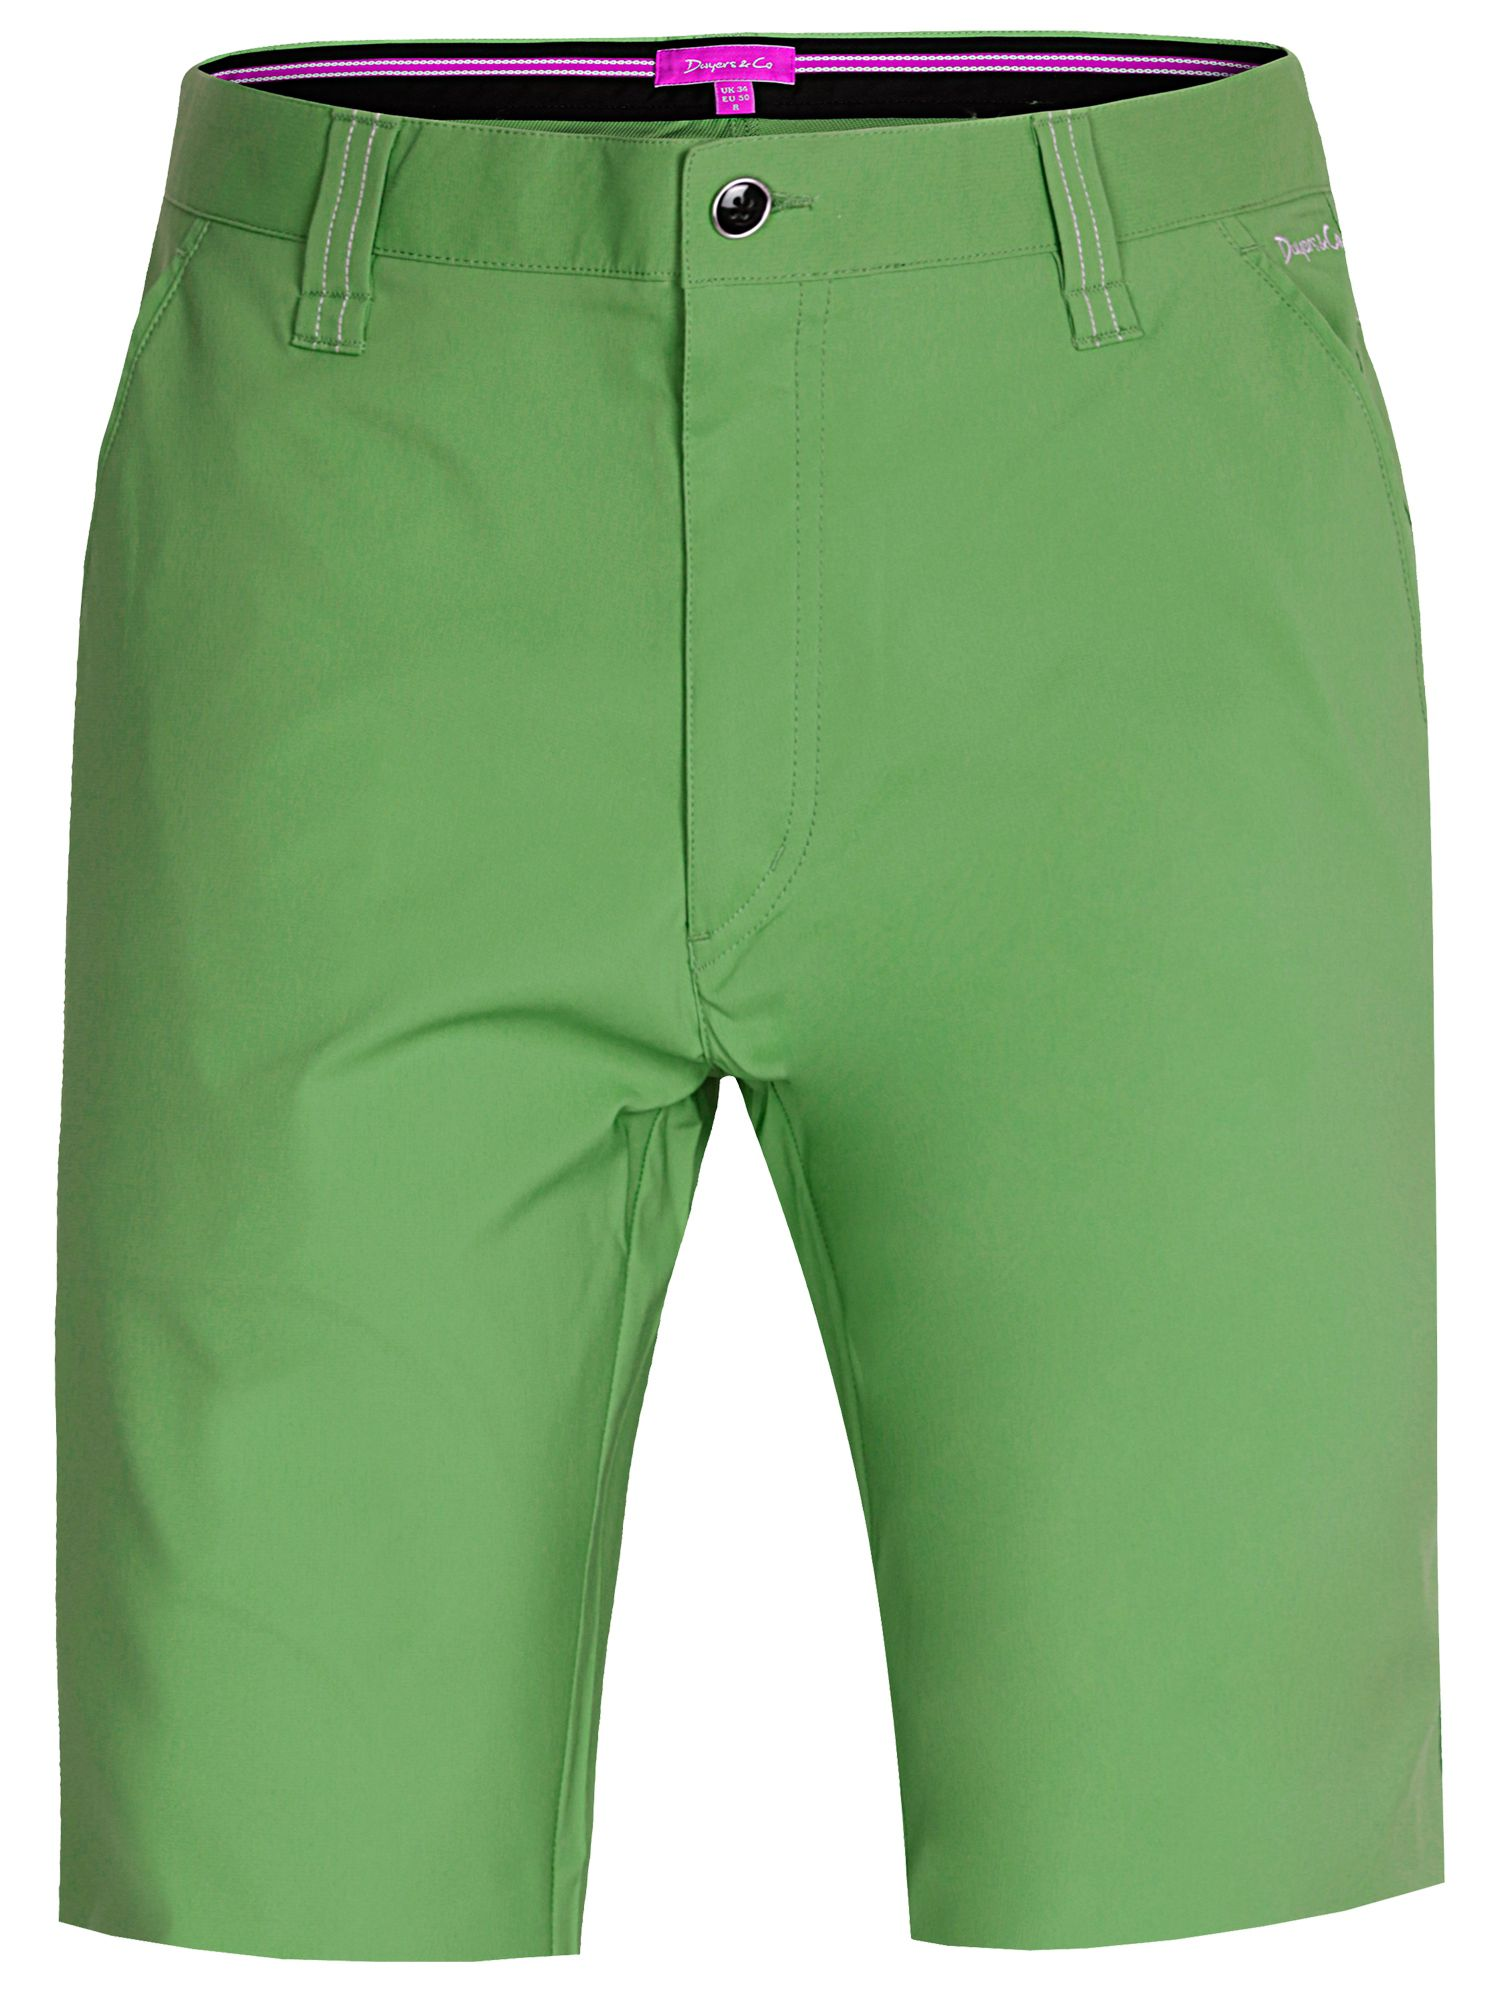 Dwyers and Co Men's Dwyers and Co Micro Tech 2.0 shorts, Green